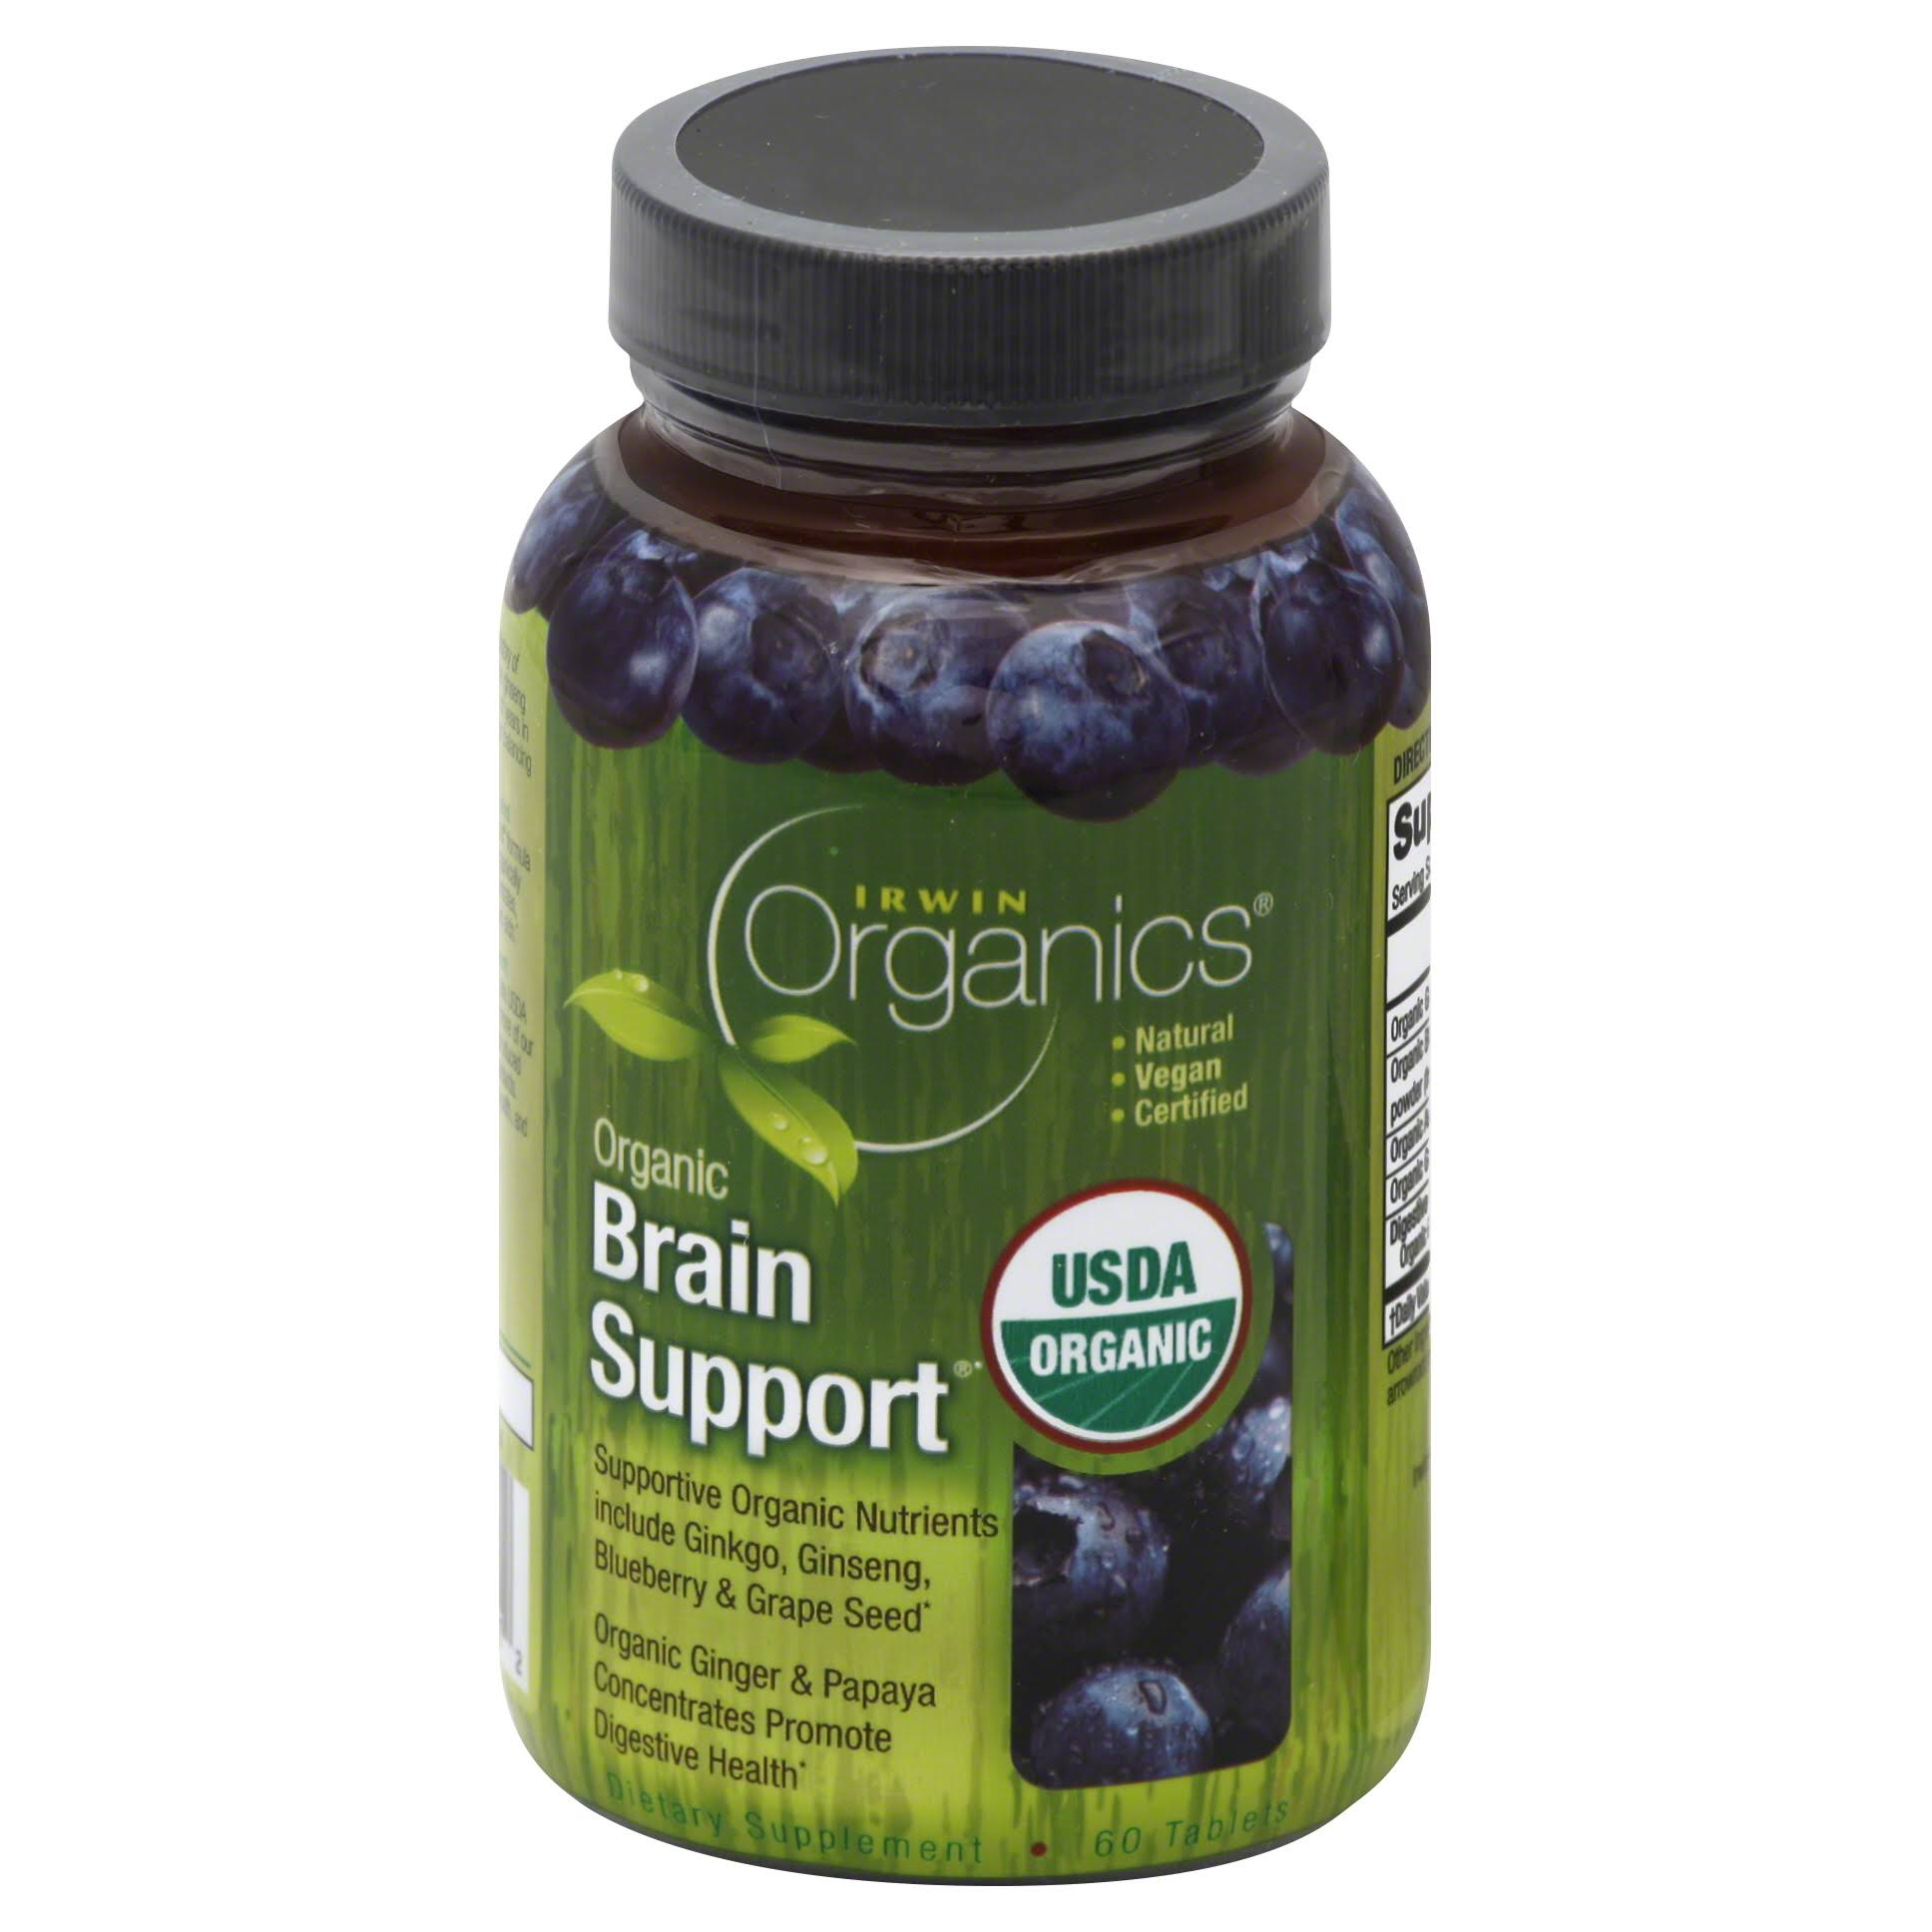 Irwin Organics Organic Brain Support Dietary Supplement - 60 Tablets